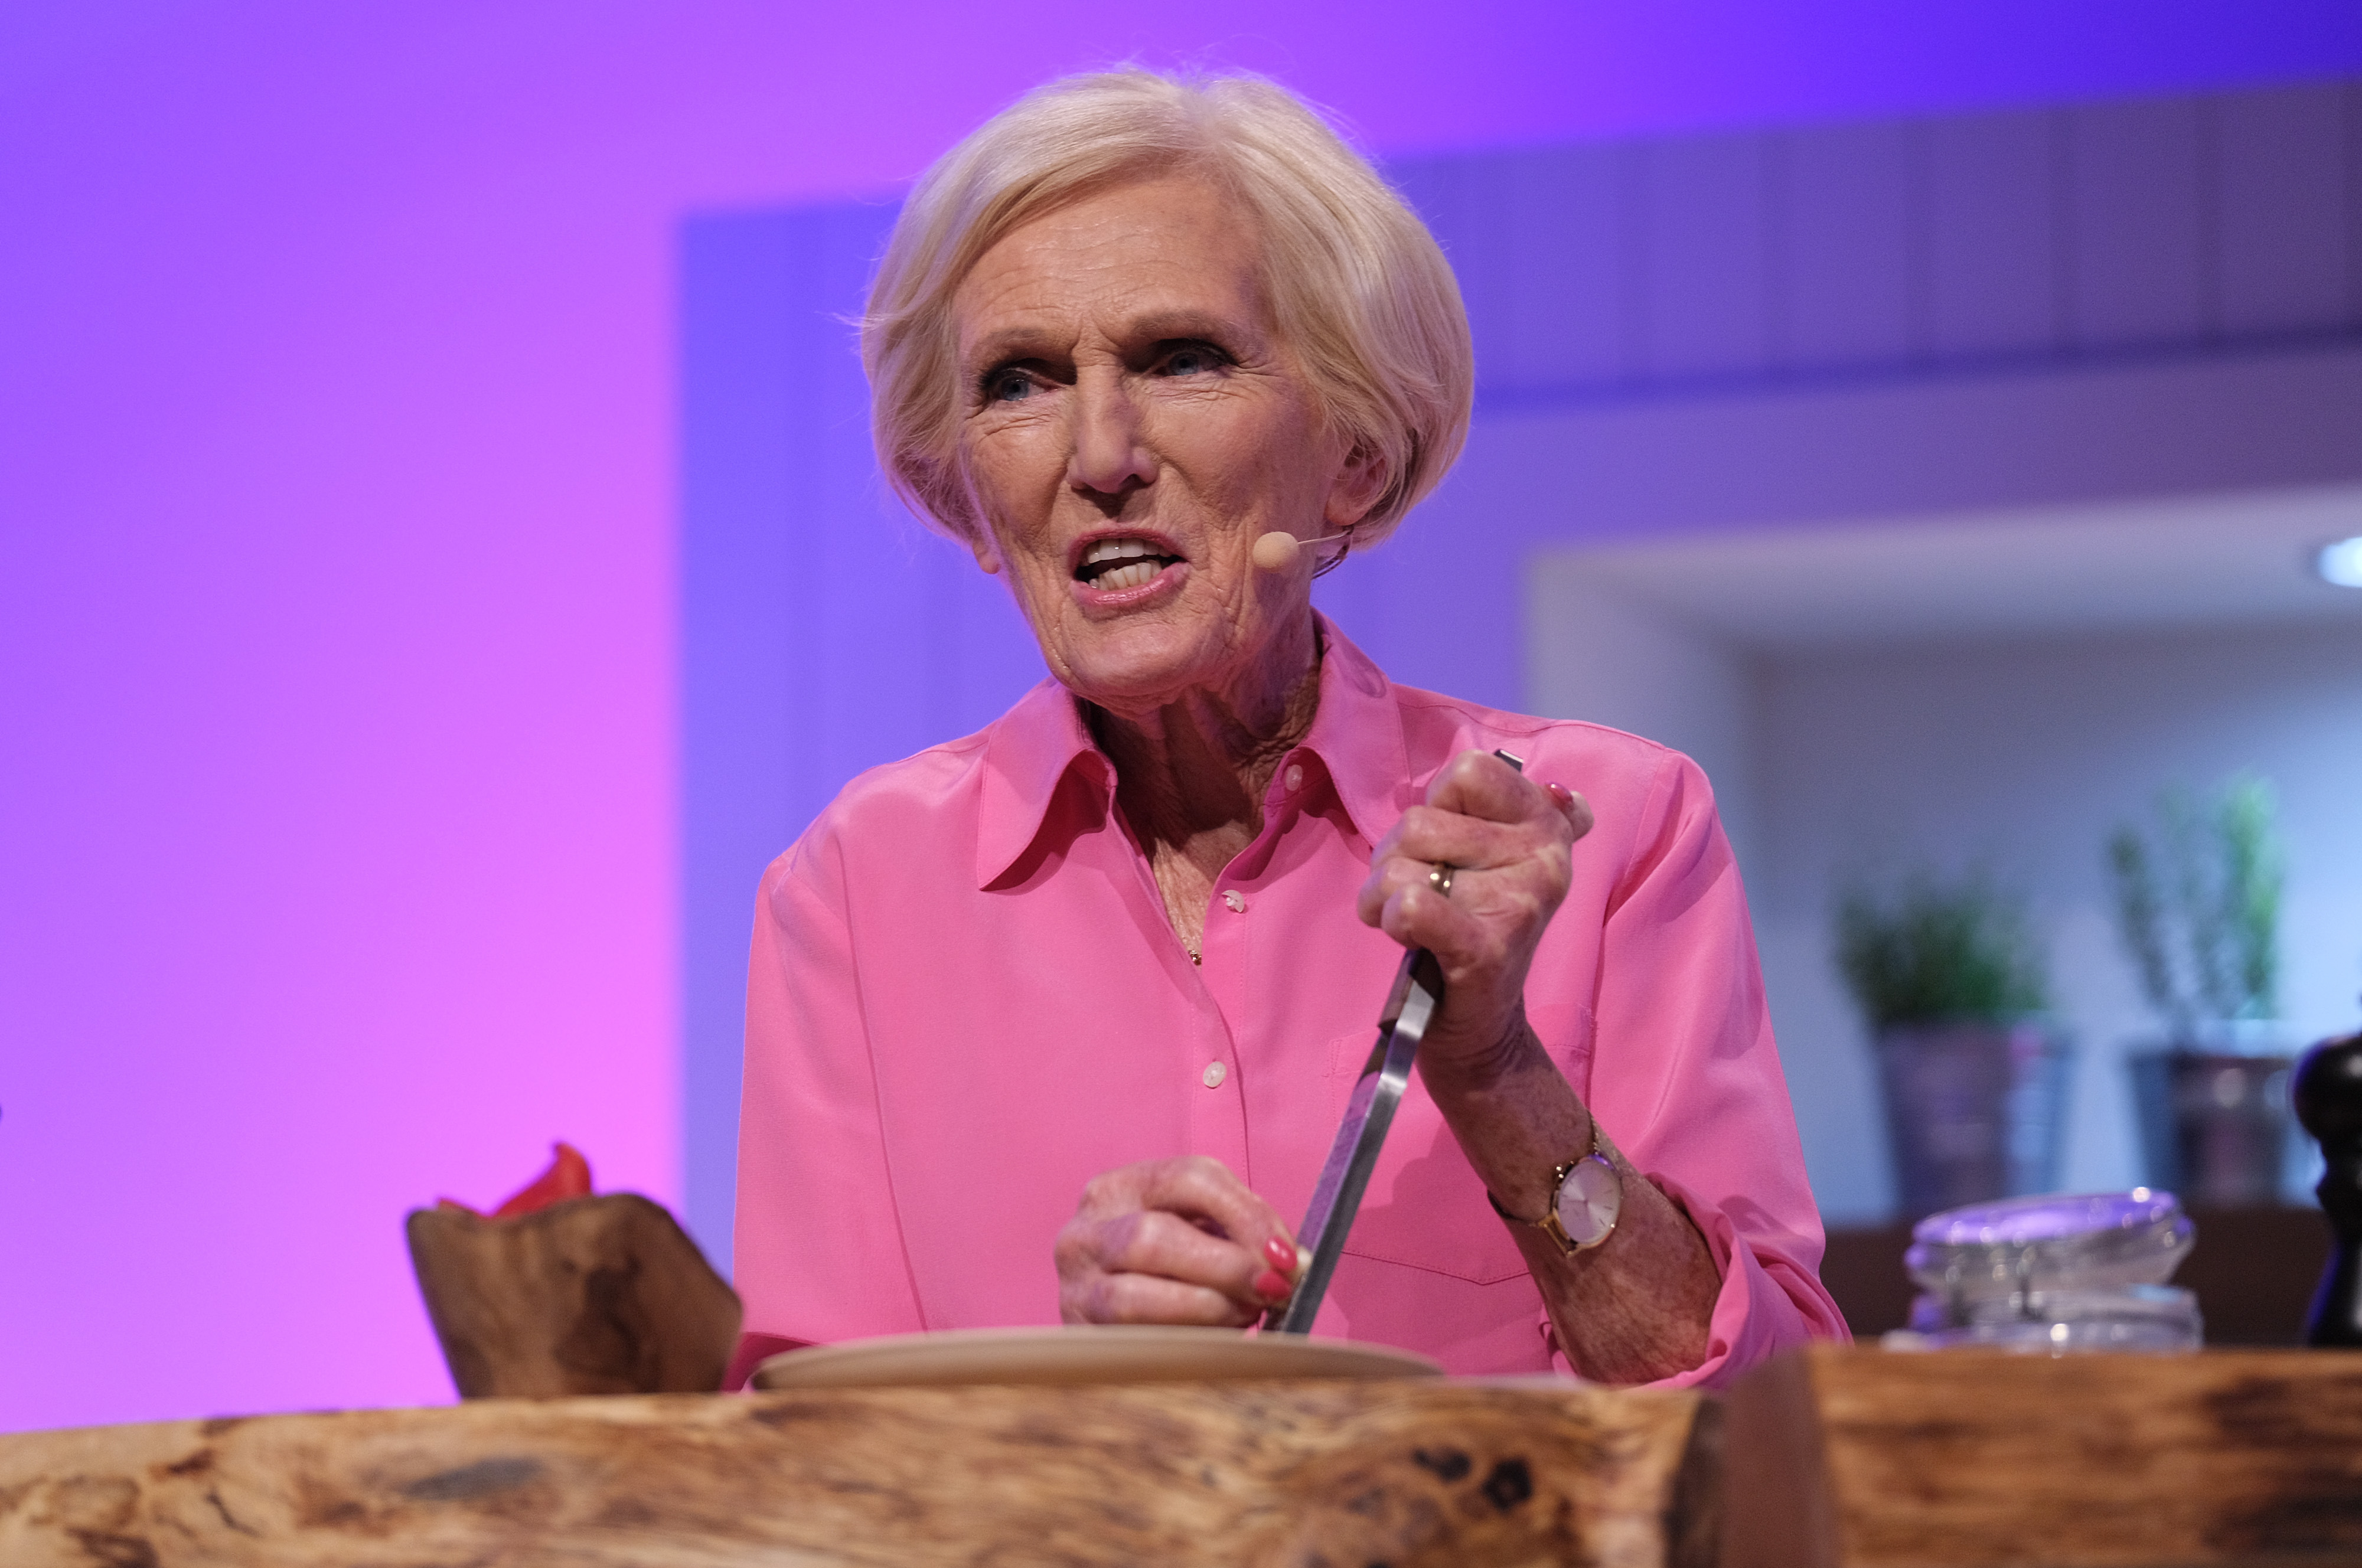 Mary Berry at the Good Food Show